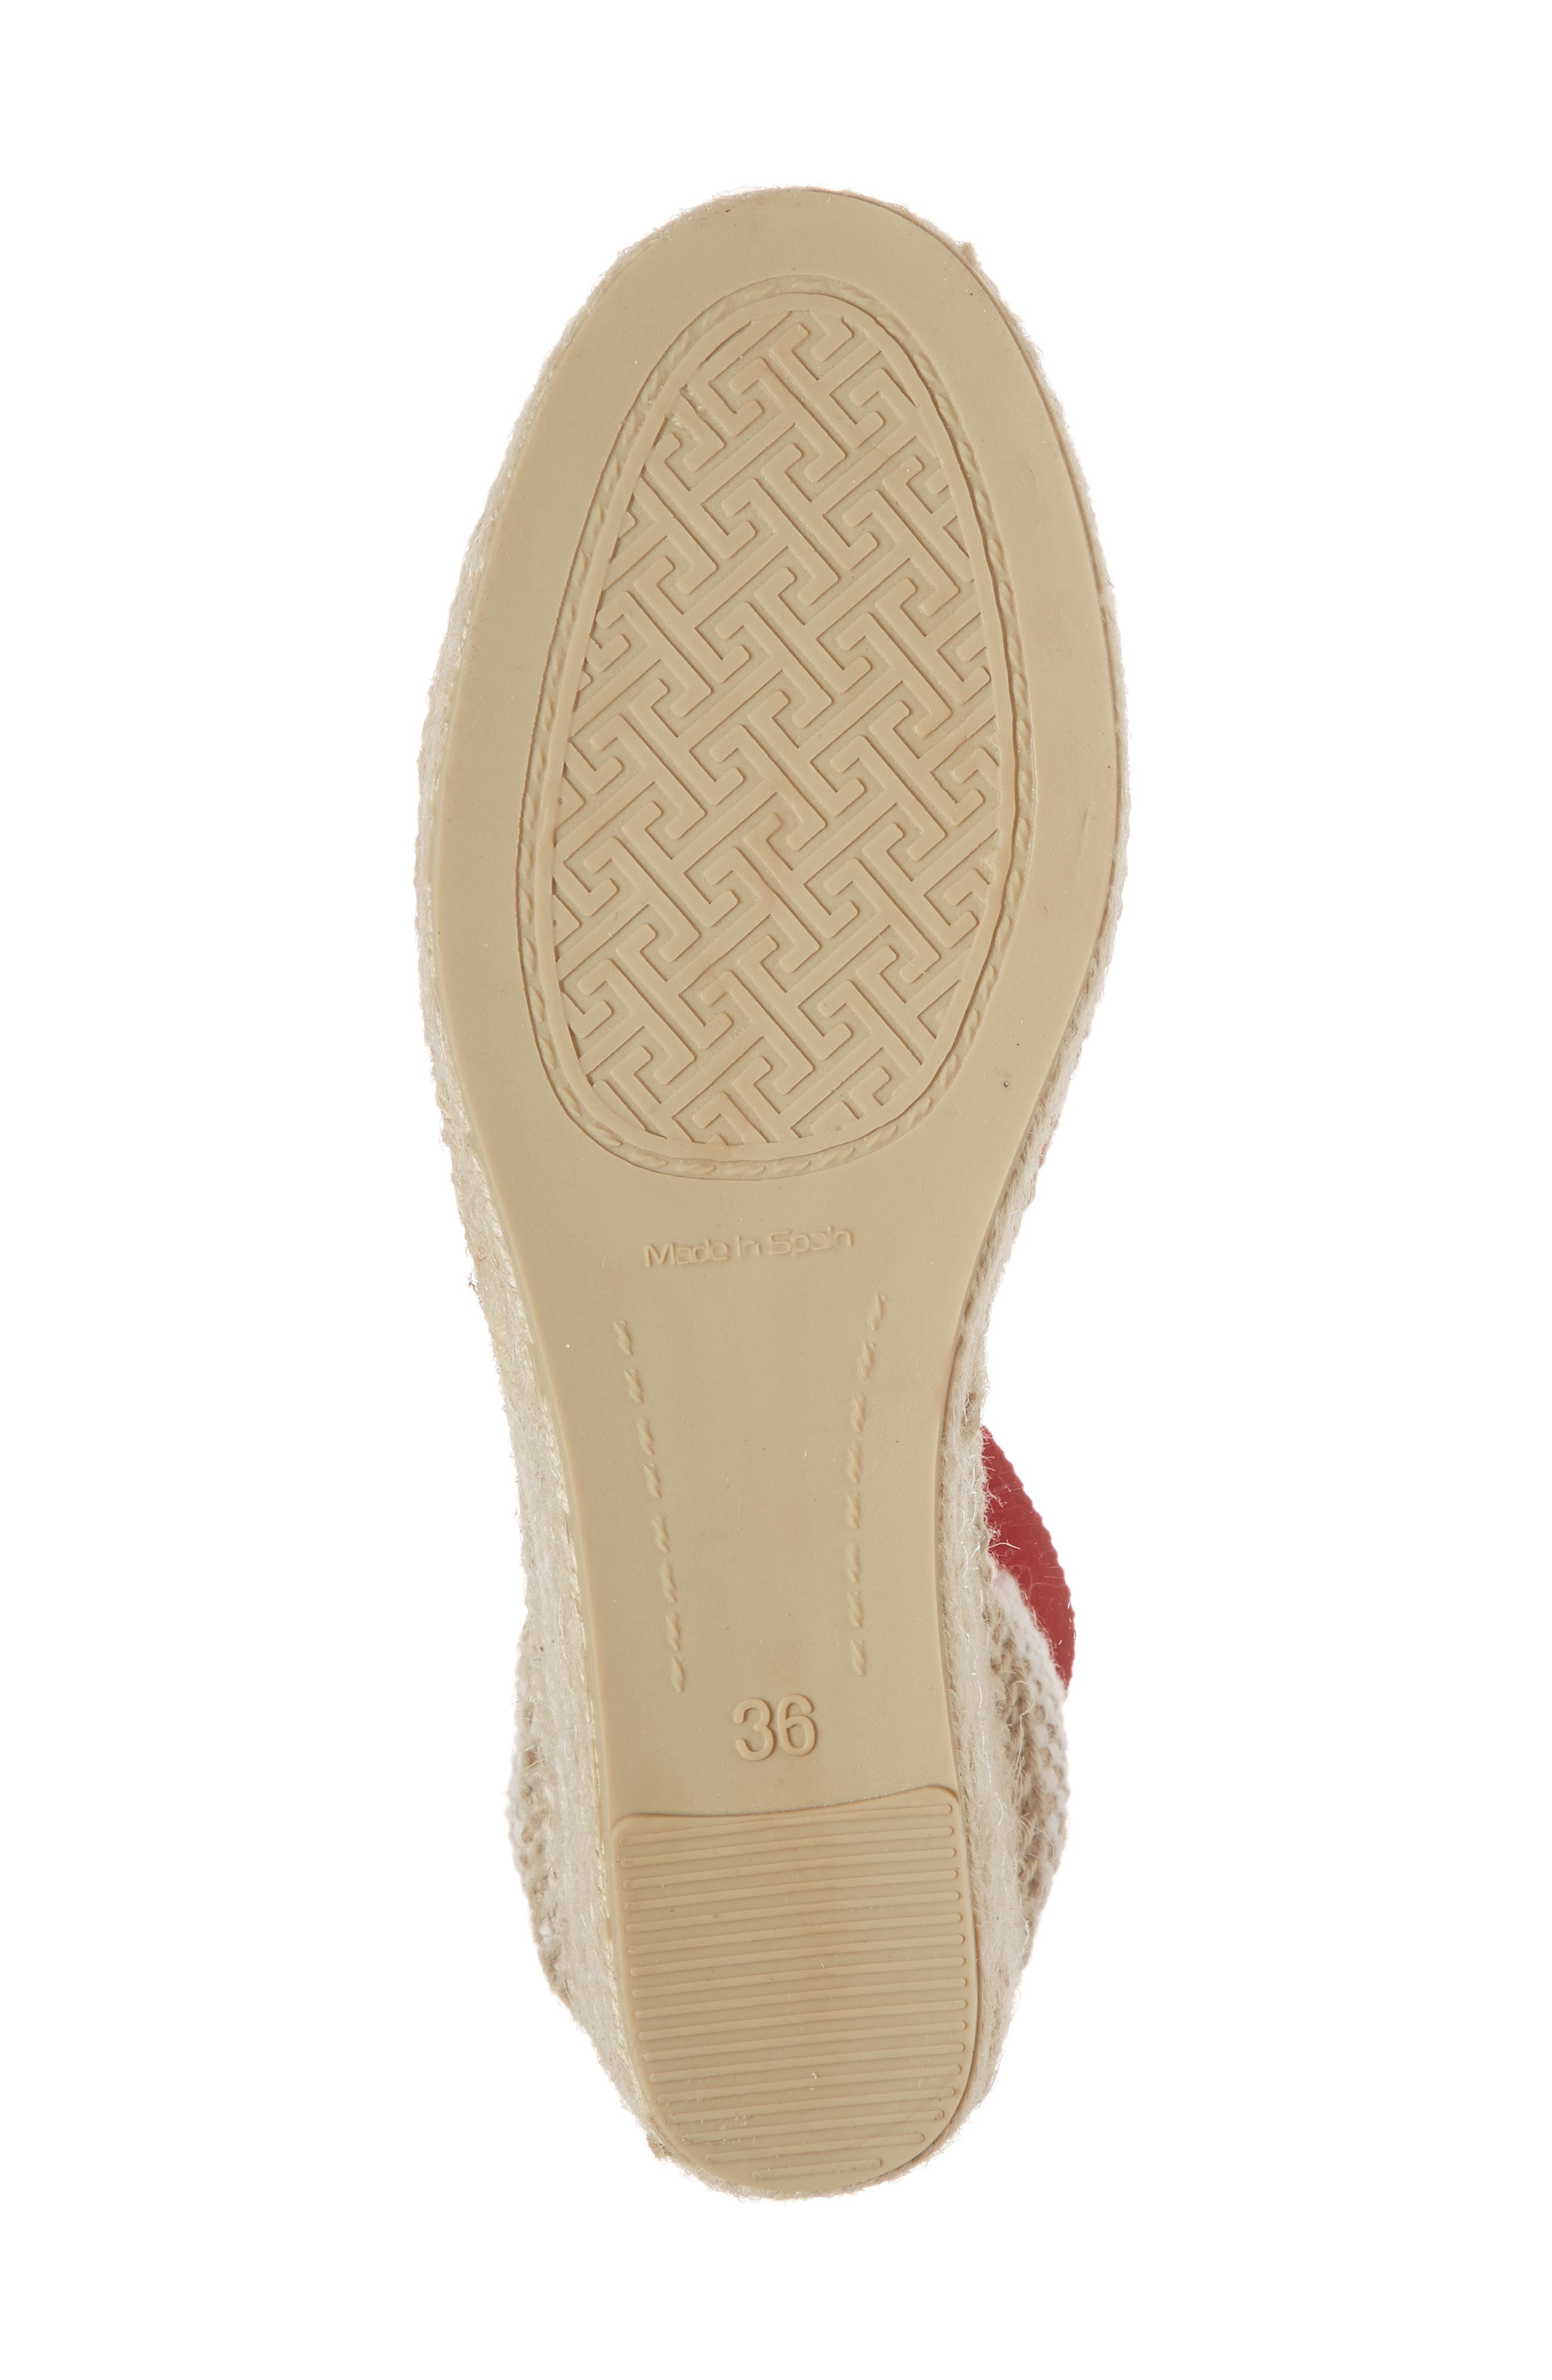 Valencia Wraparound Espadrille Wedge,                             Alternate thumbnail 6, color,                             Red Fabric